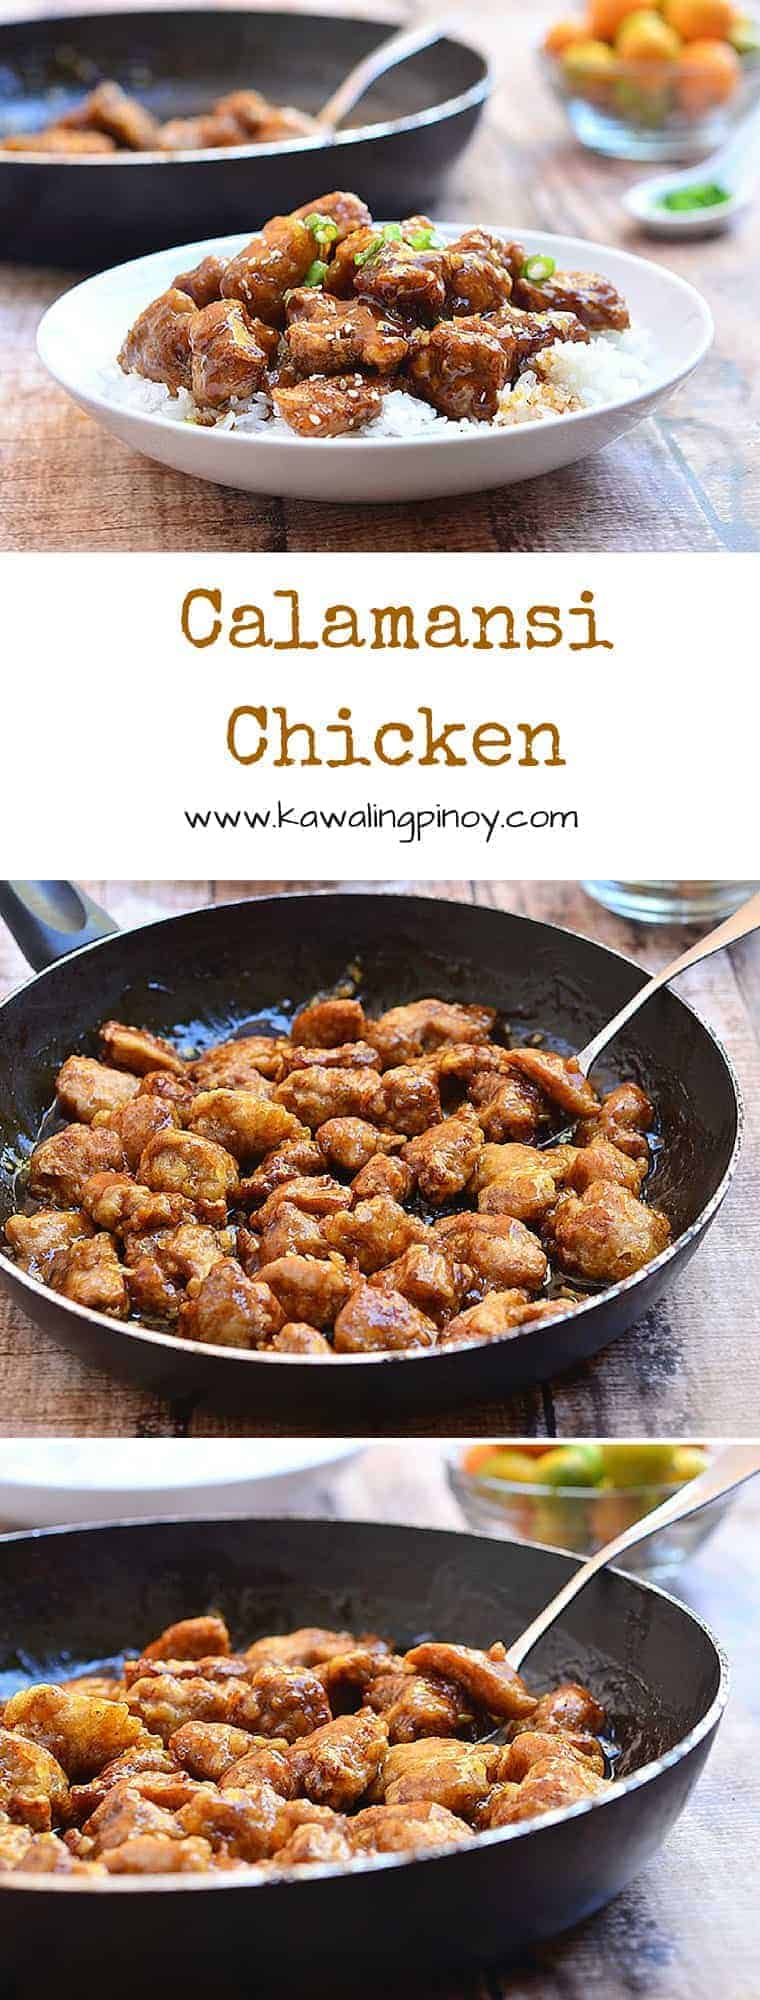 This Calamansi Chicken is an adaptation of the popular Orange Chicken. Crisp chicken pieces are drenched in a sweet and tangy citrus sauce for a delicious dish that's sure to be a family favorite